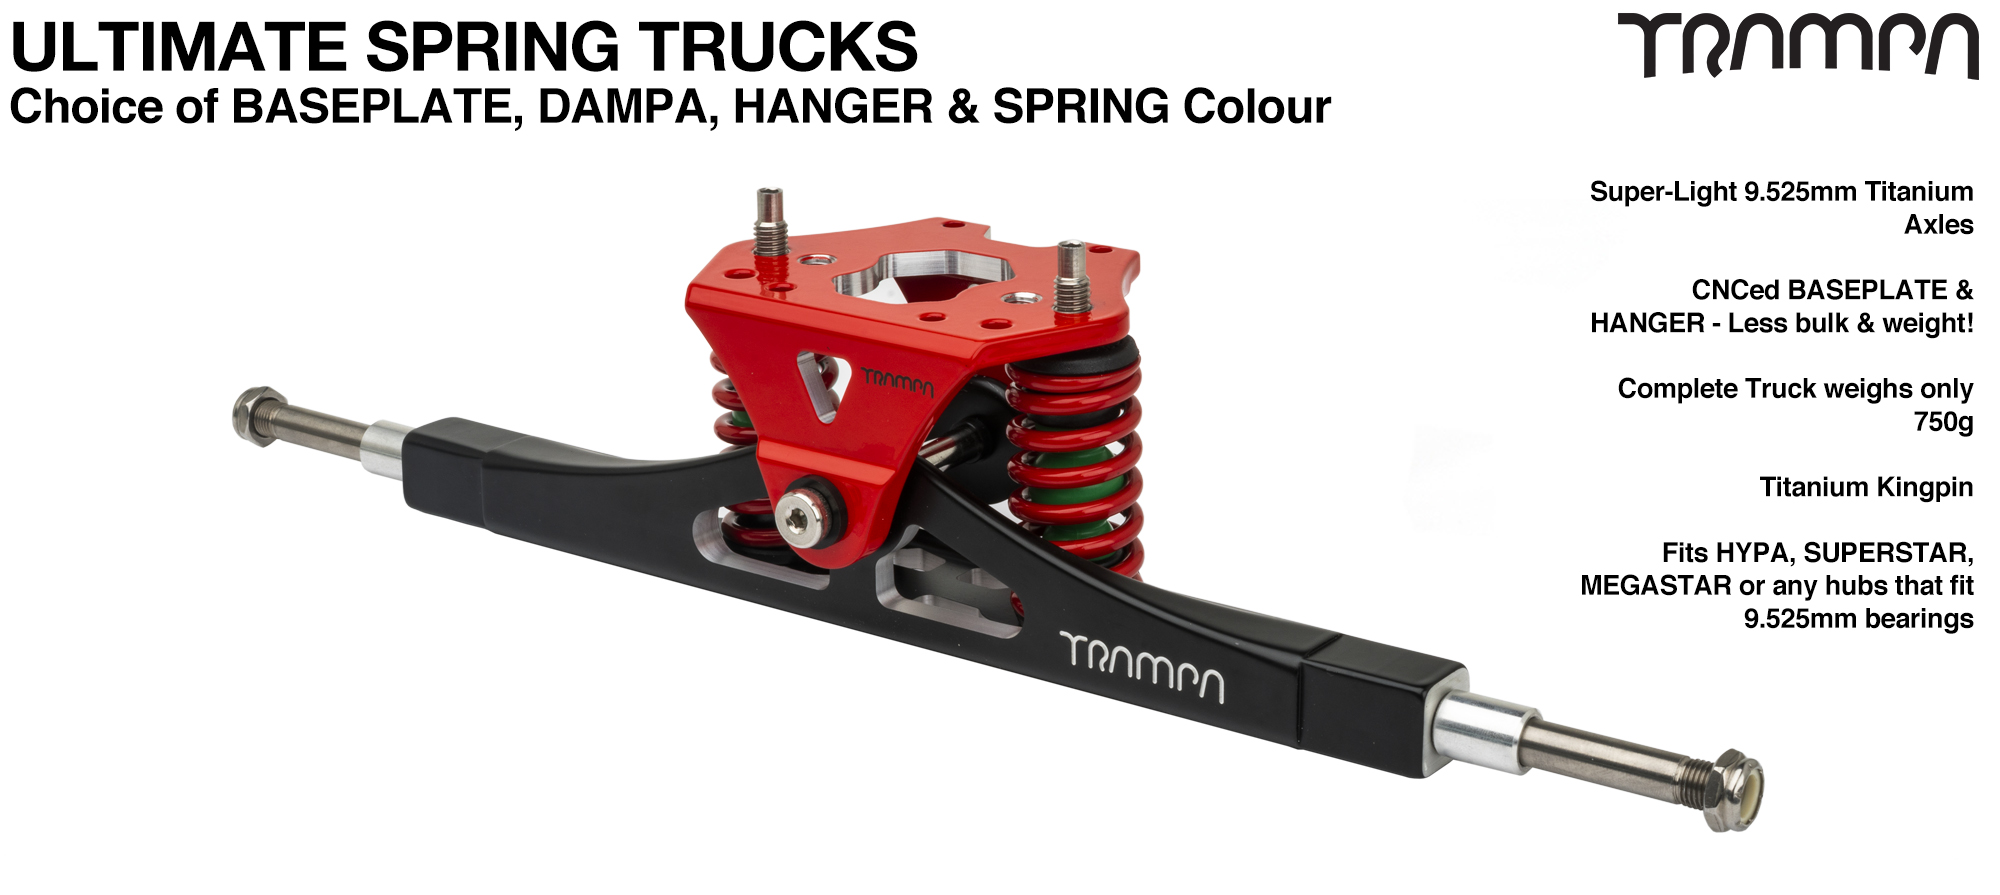 Precision CNC ULTIMATE ATB TRUCK with CNC Motor Mount fixing points, RED Baseplate, TITANIUM Axles & Kingpin